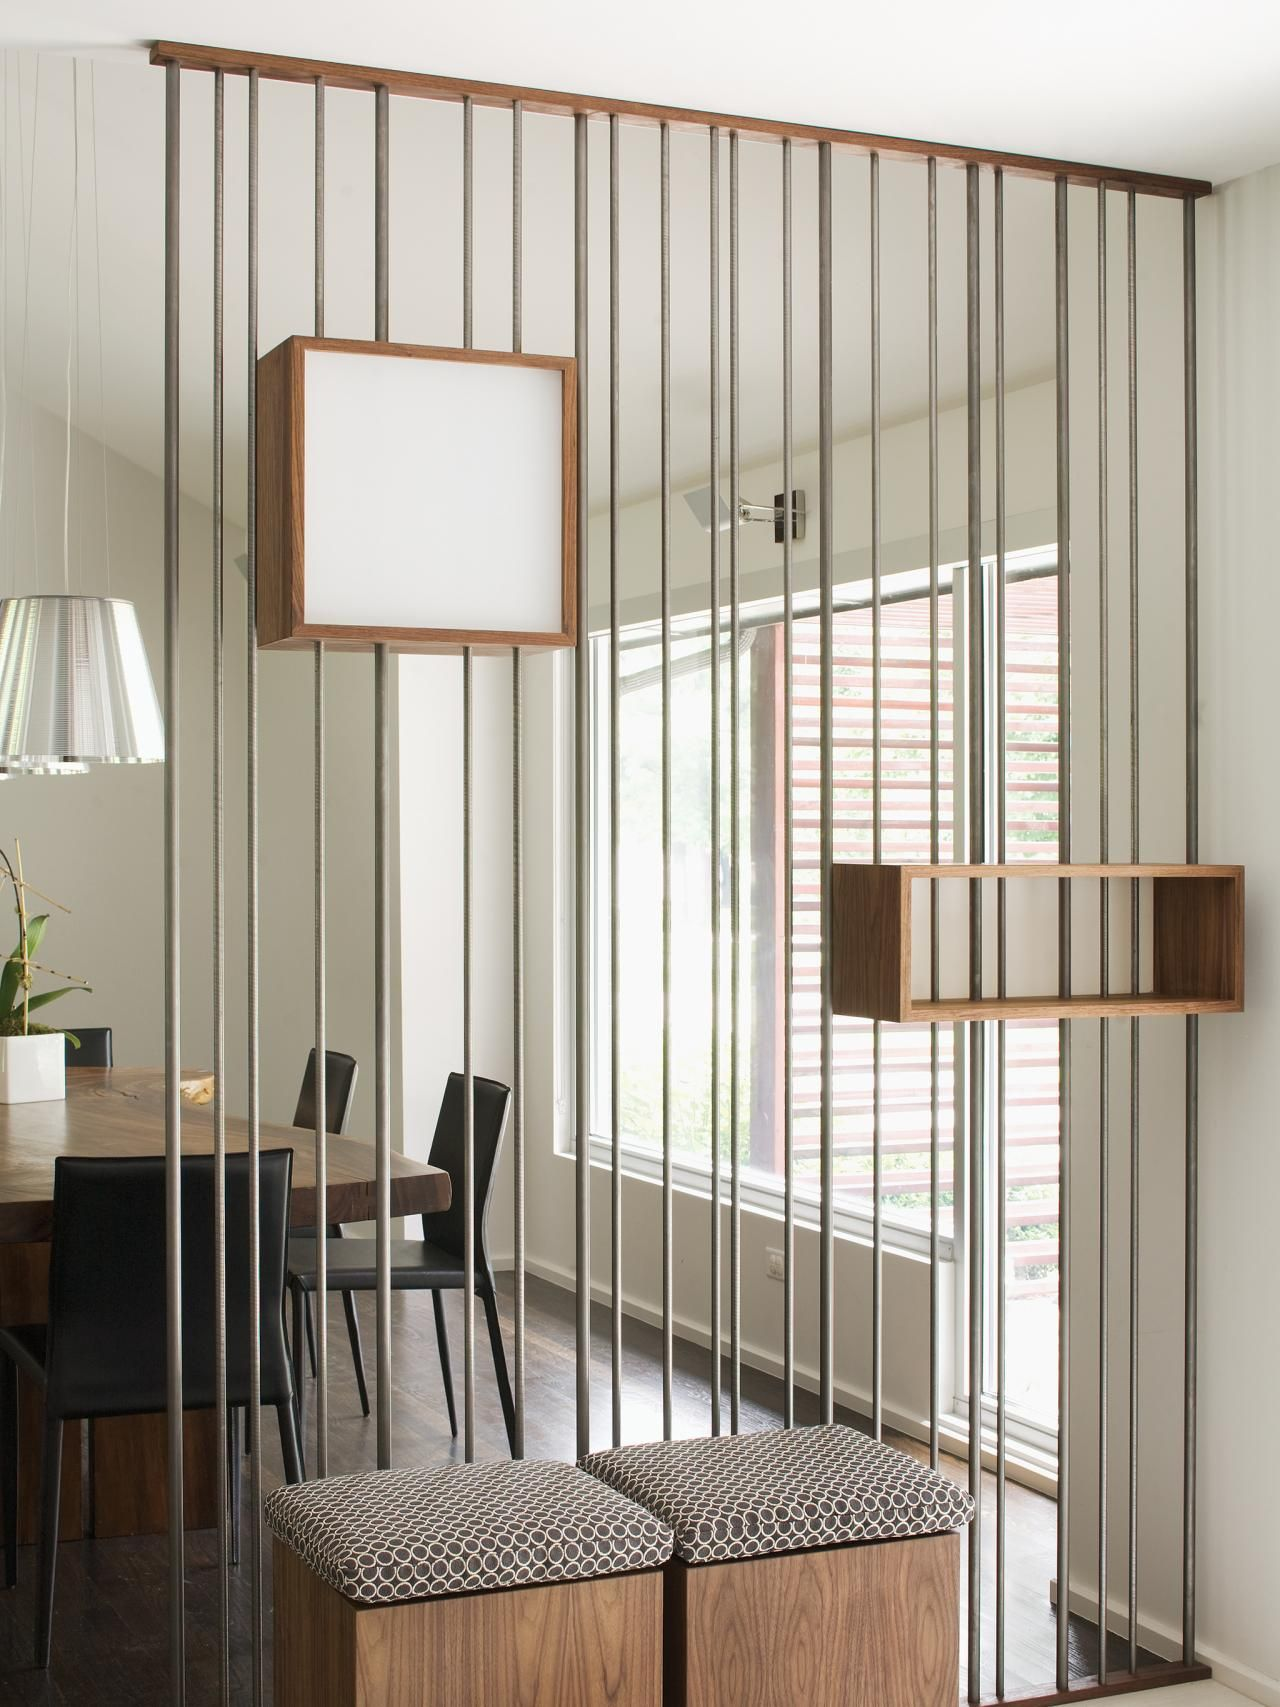 Diy room divider ideas home interesting room divider screens for home decoration dieas modern